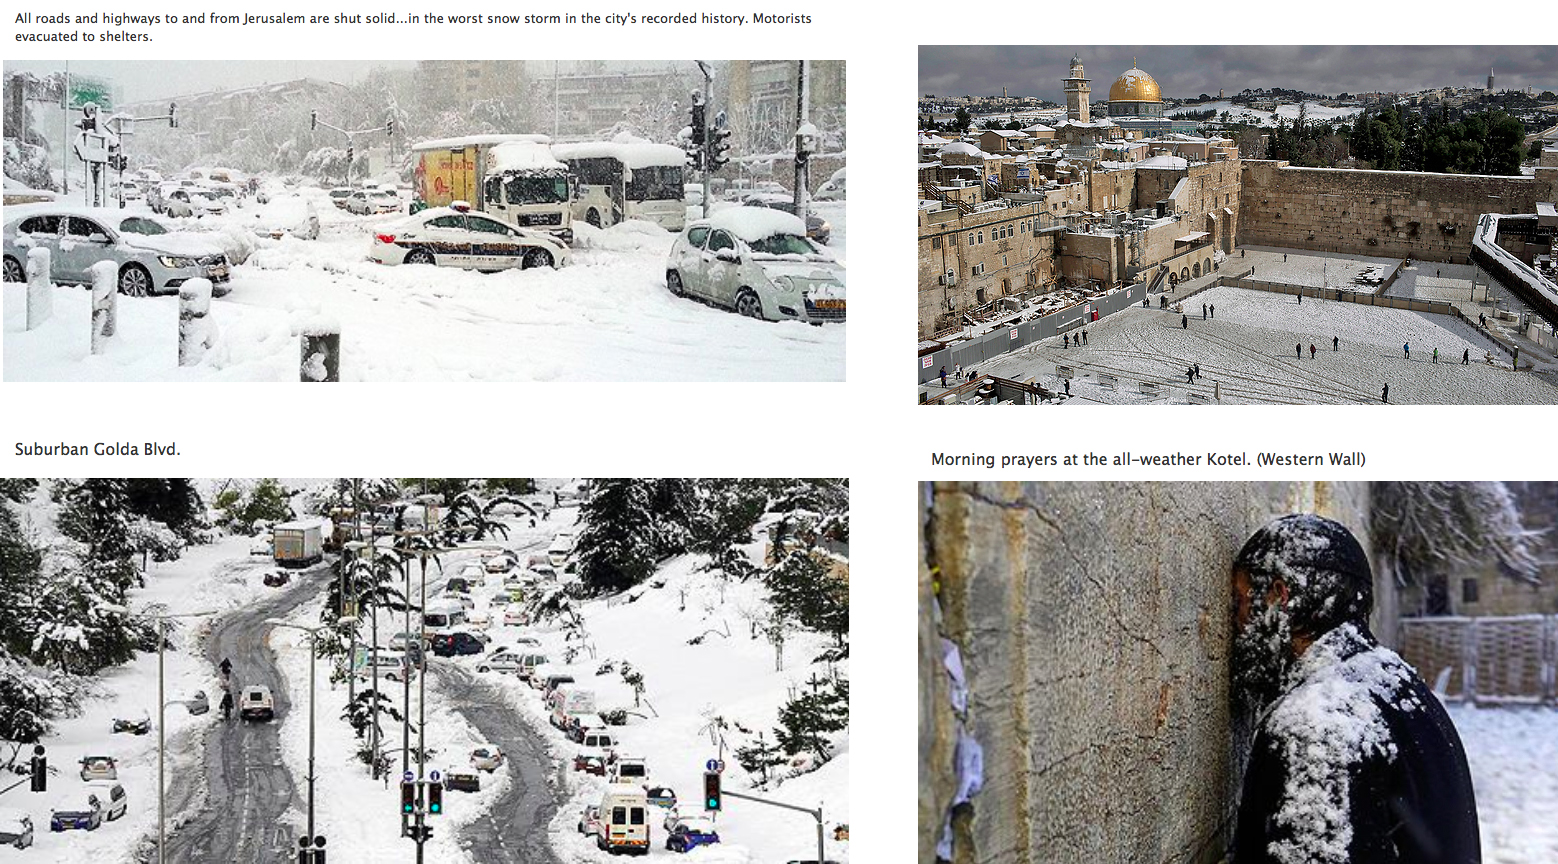 Israel in winter